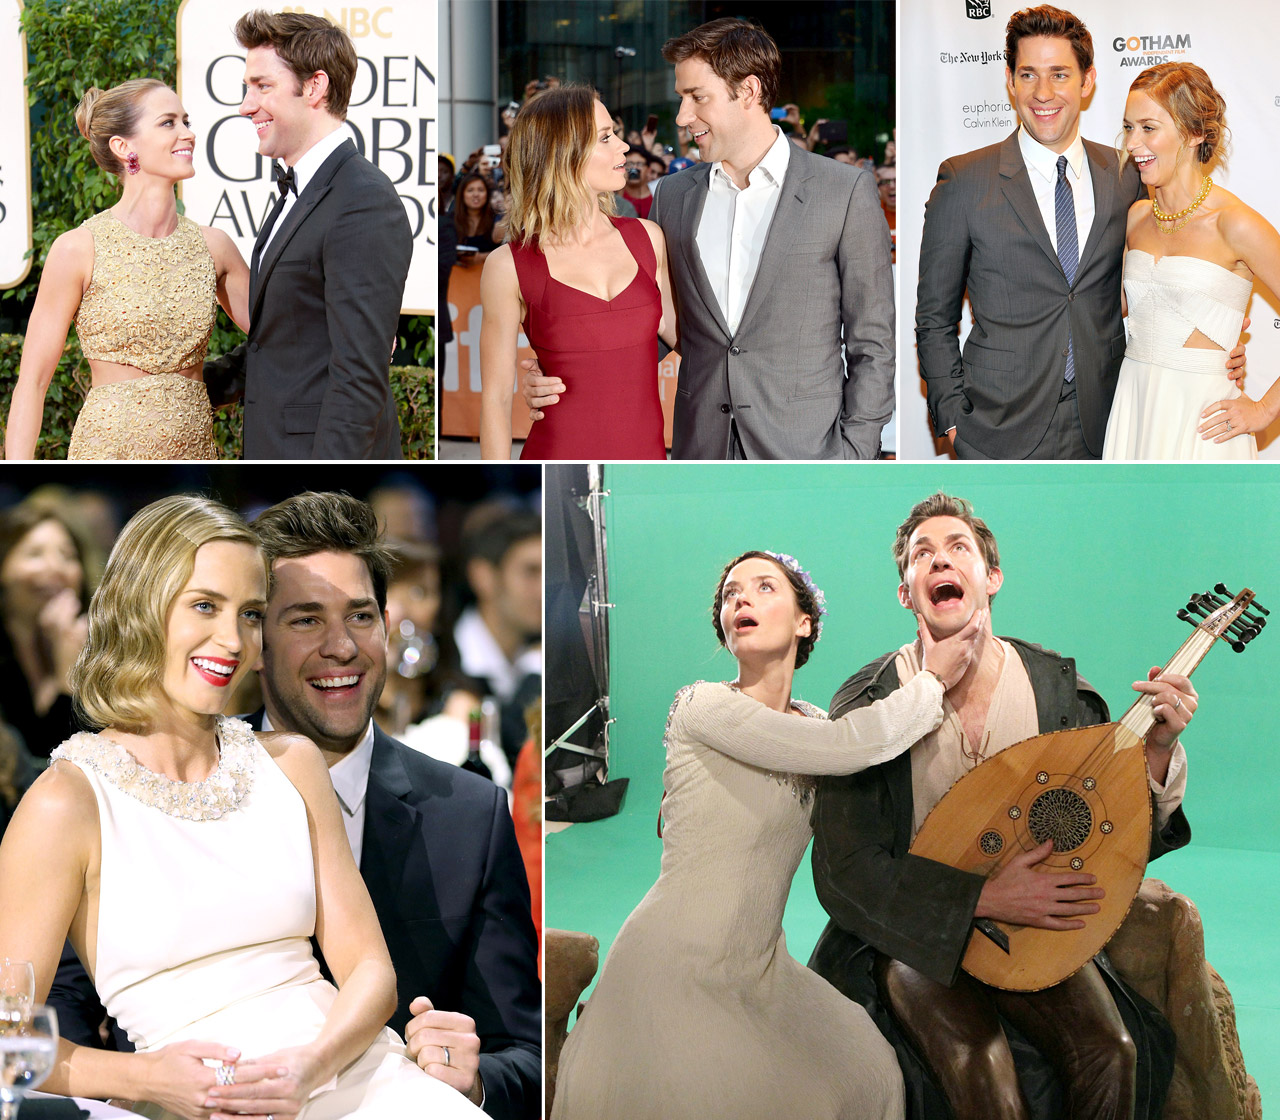 John Krasinski Emily Blunt Wedding.Emily Blunt And John Krasinski S Relationship Timeline Photos